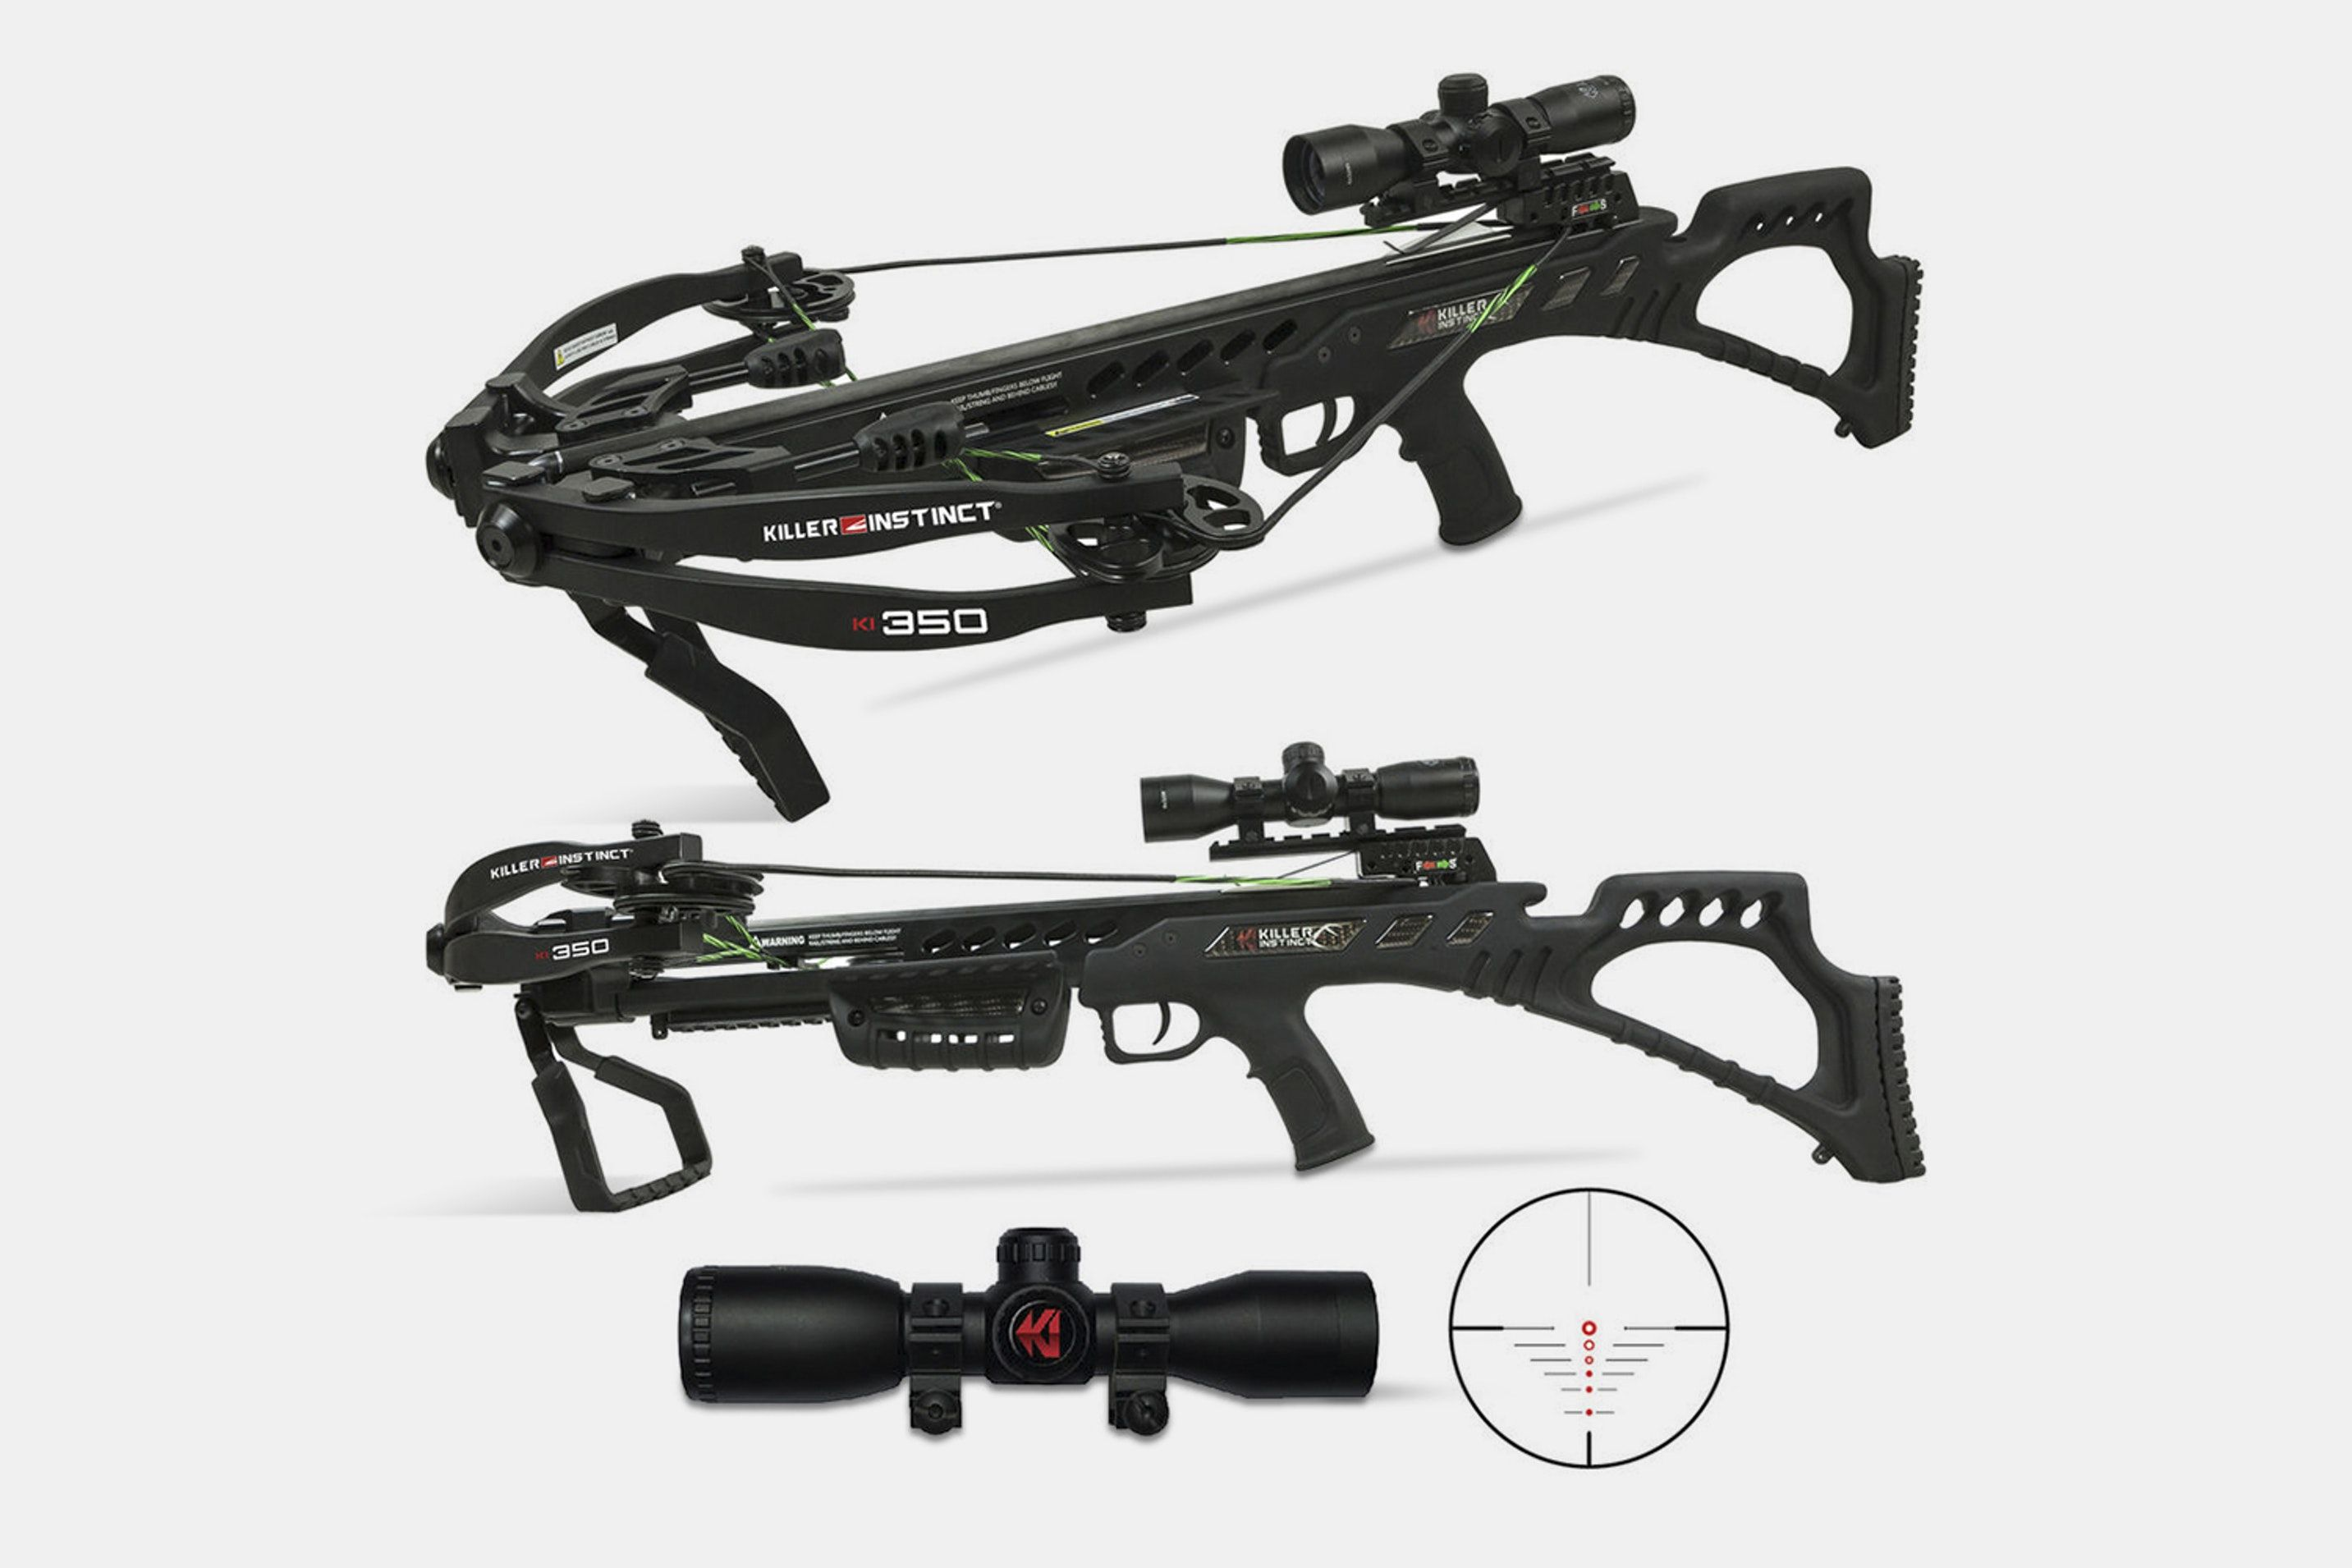 Pin By Mike Martin On Fishing Gear Pinterest Gears Crossbow And